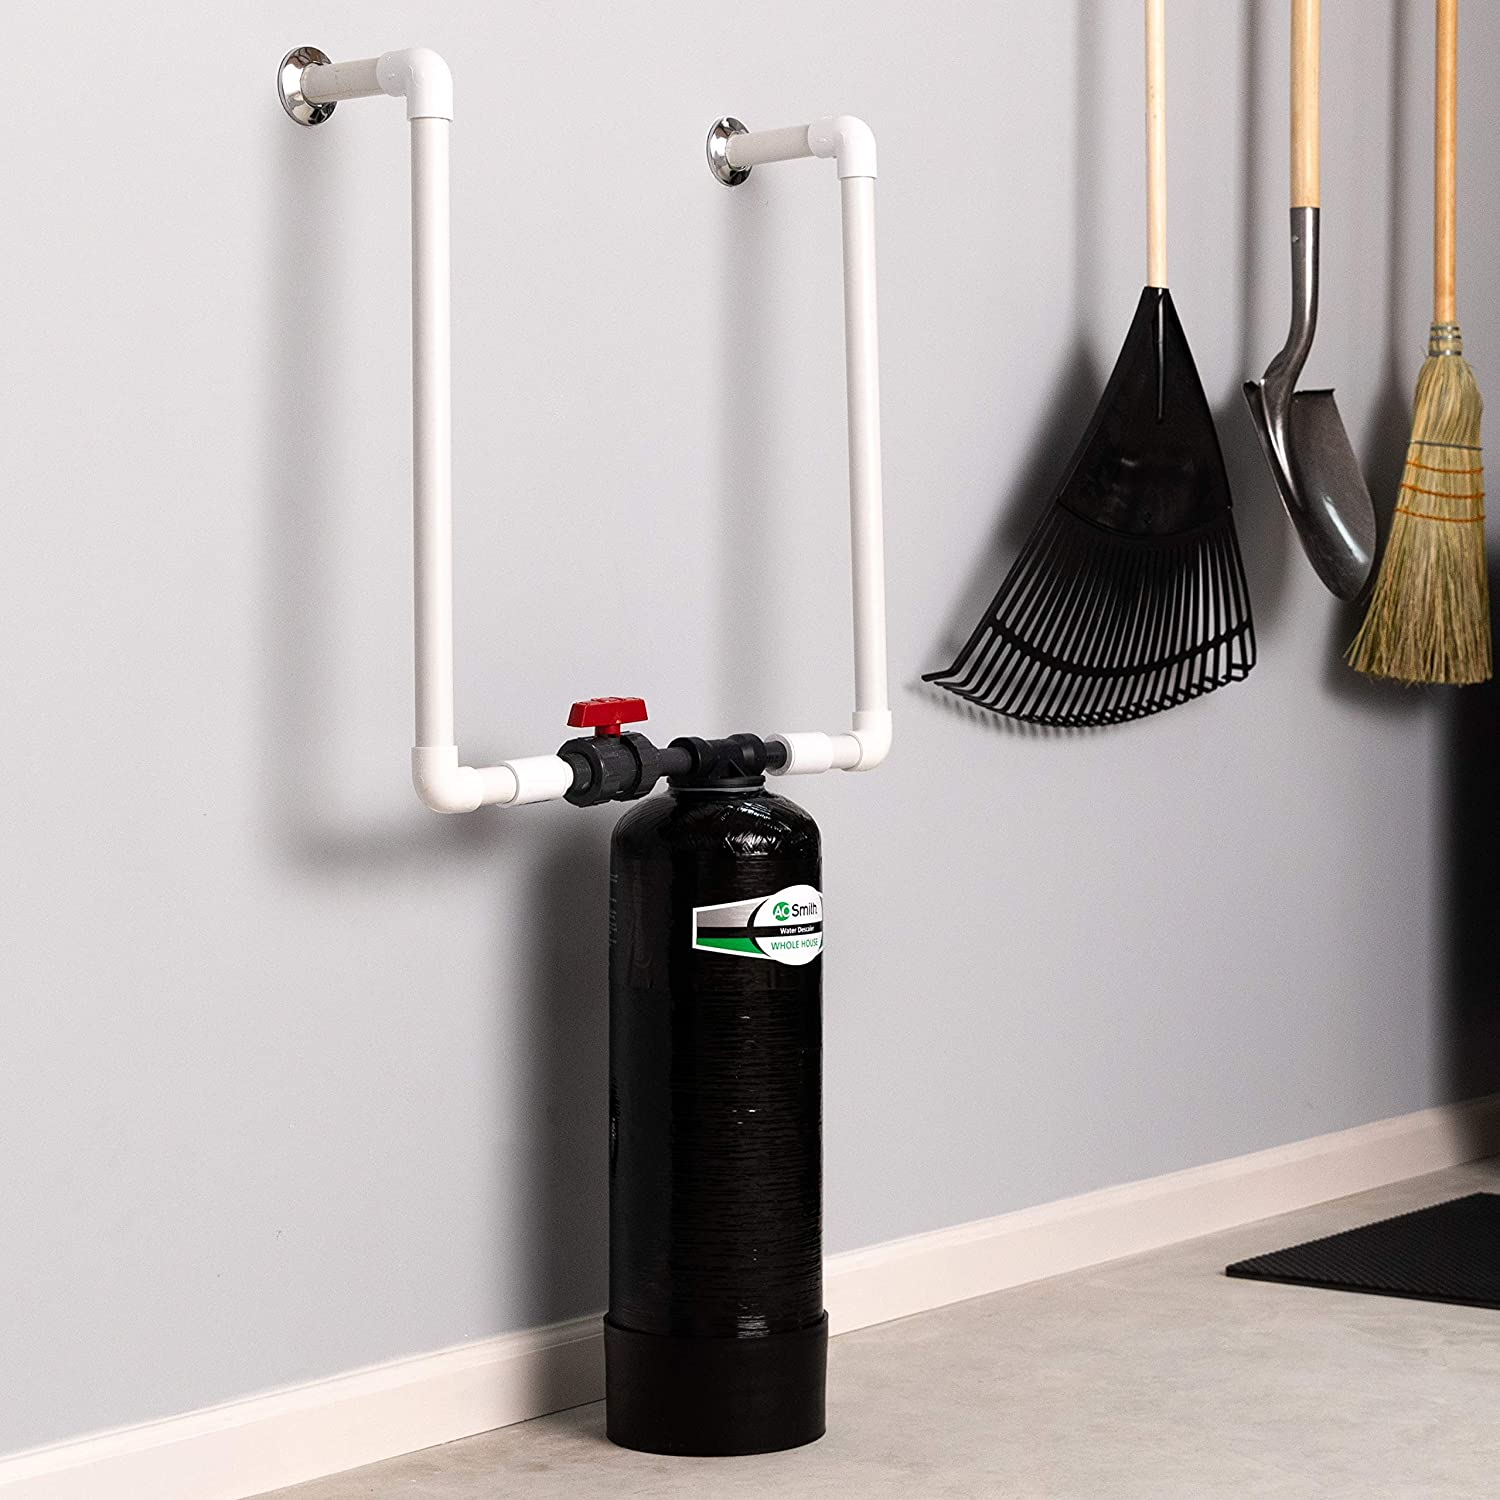 AO Smith water softener reviews - installation